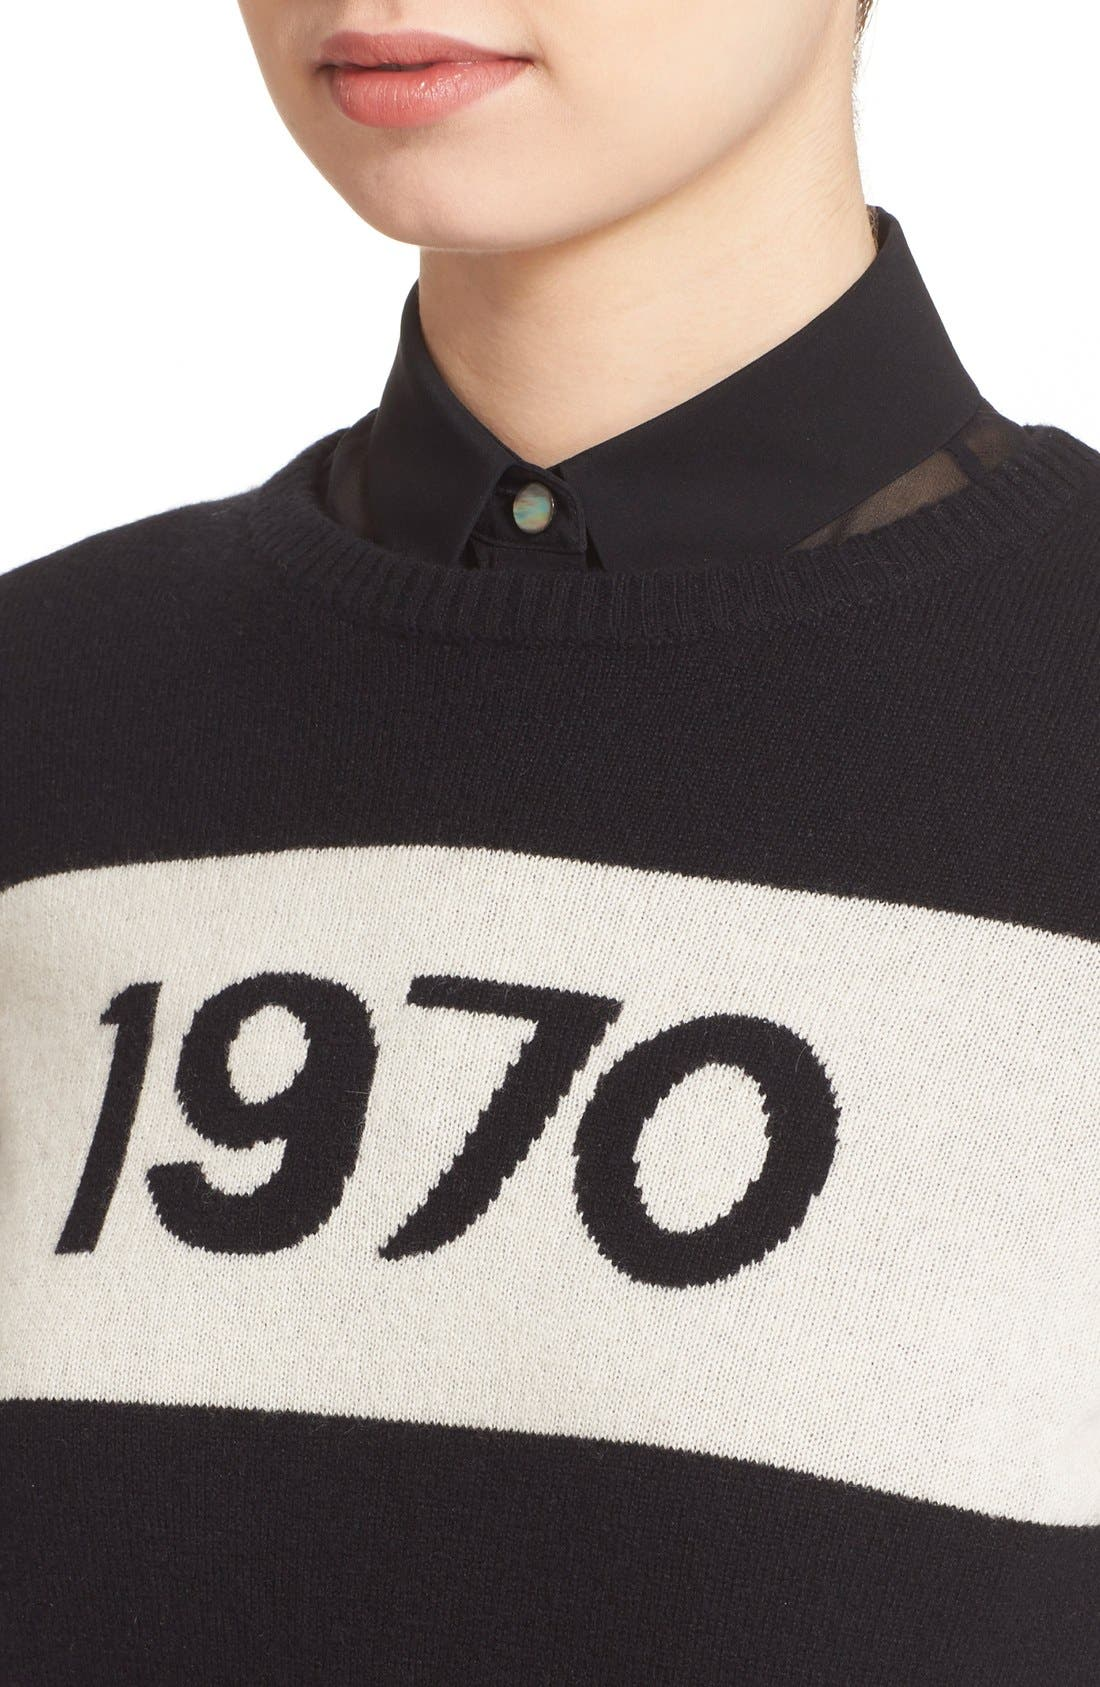 '1970' Wool Sweater,                             Alternate thumbnail 3, color,                             001